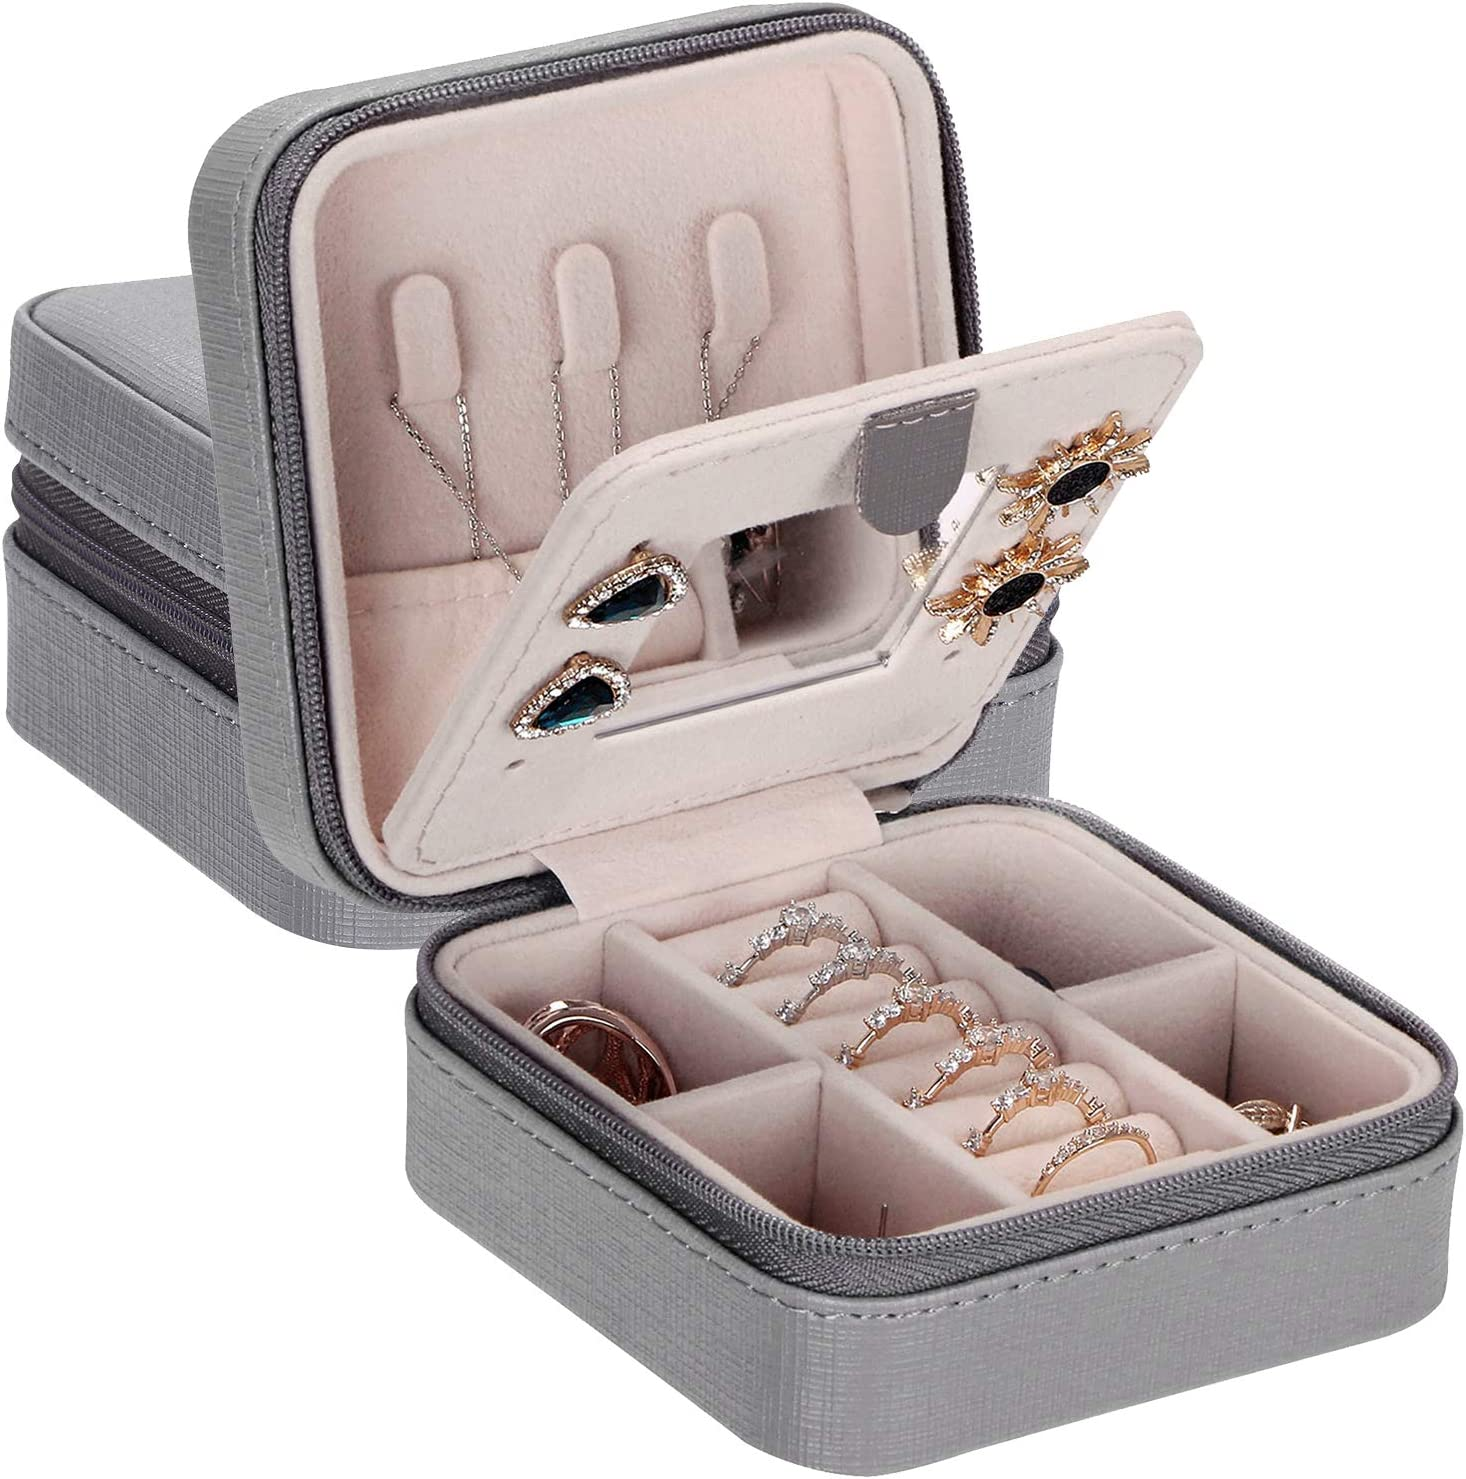 Portable Travel Jewelry Box Organizer Case w// Mirror for Rings Earrings Storage